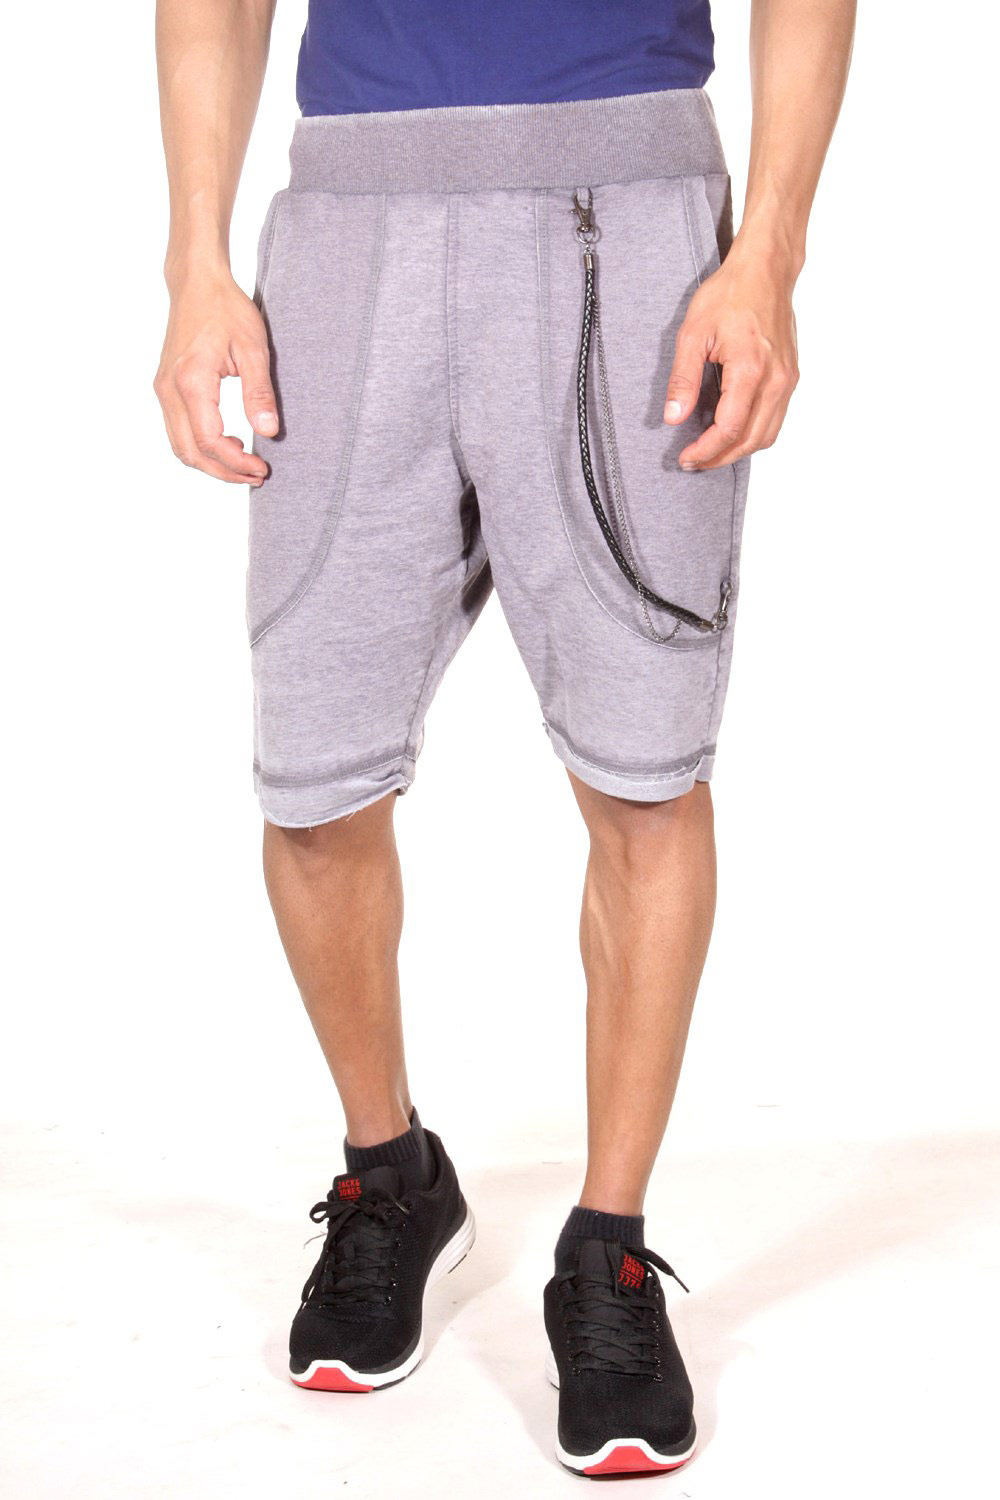 OPEN Workoutshorts auf oboy.de